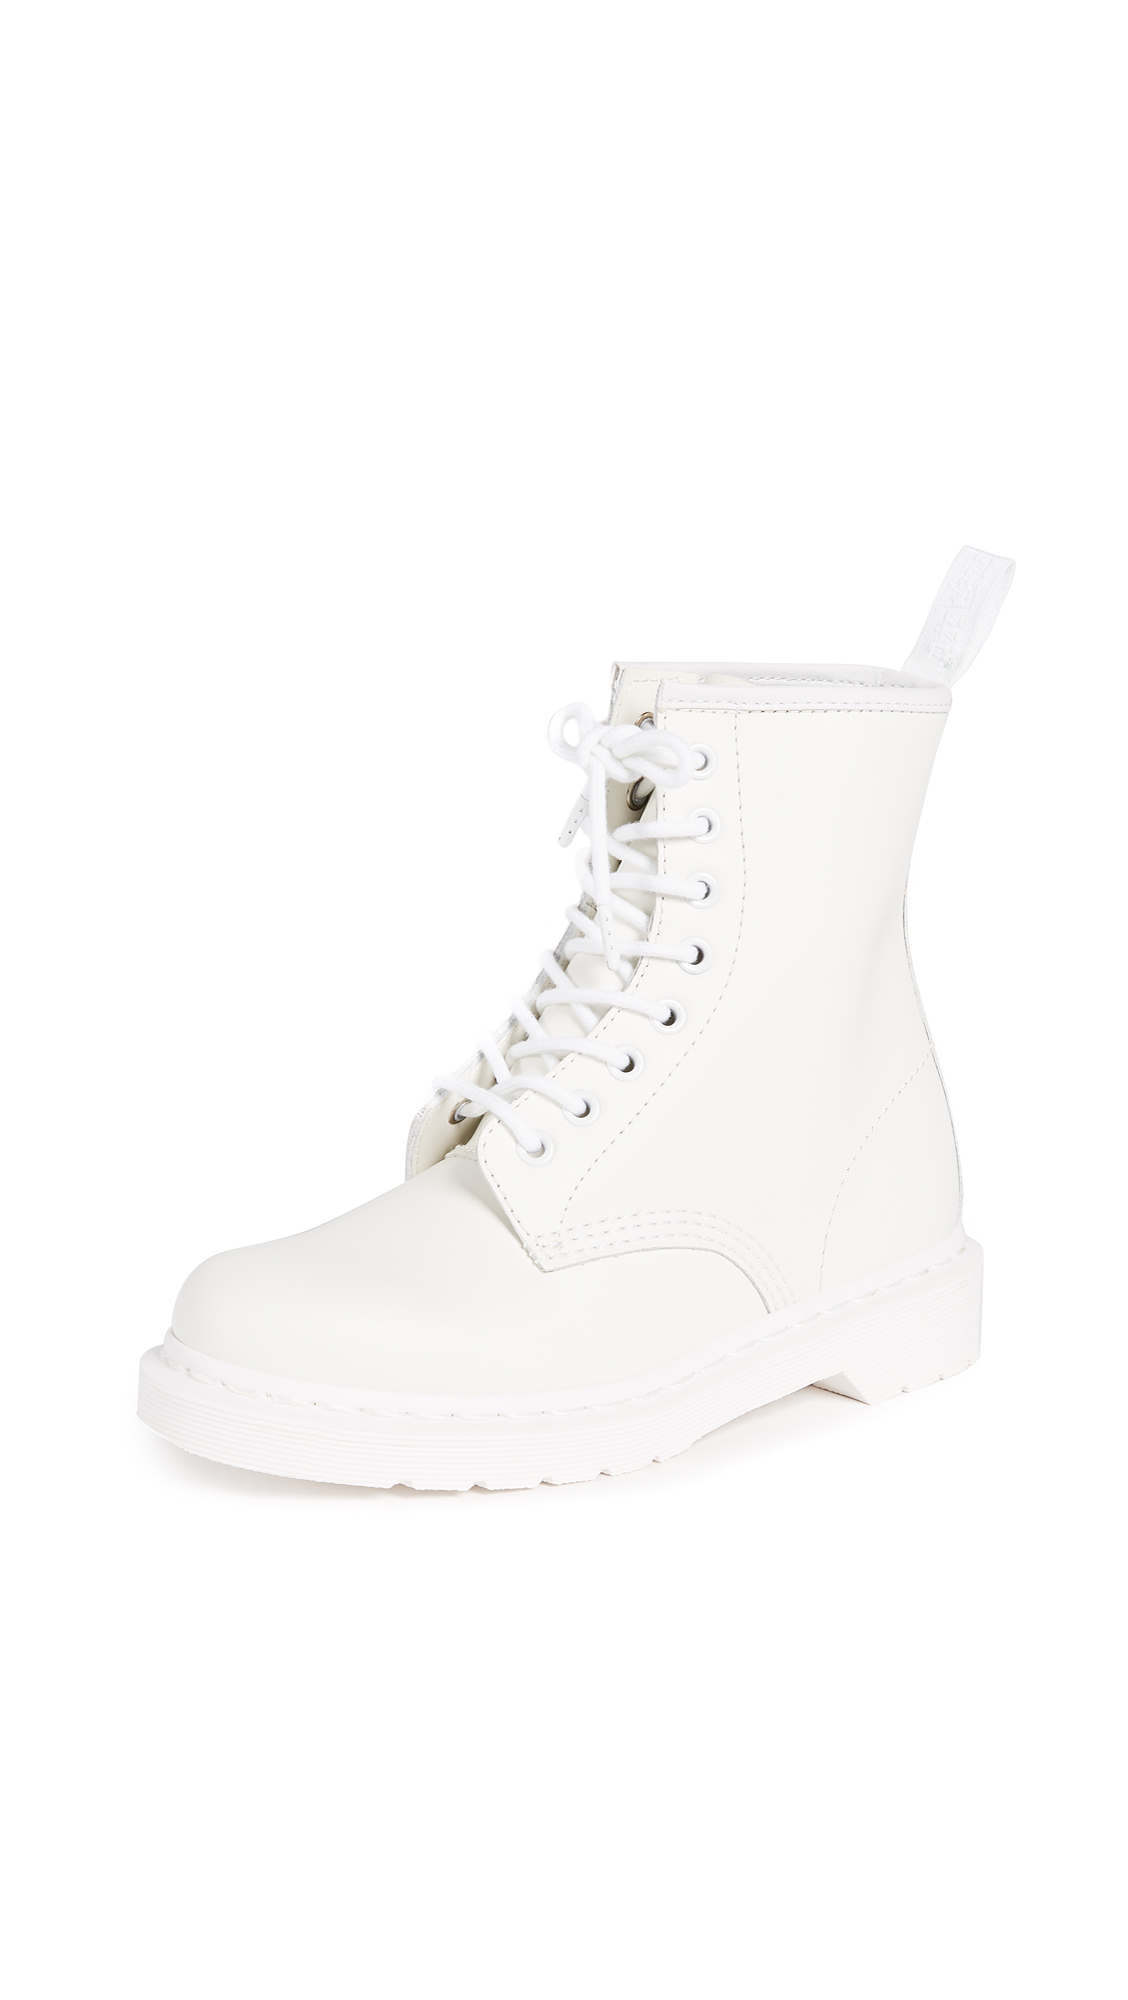 Dr. Martens 1460 Mono 8 Eye Boot - White